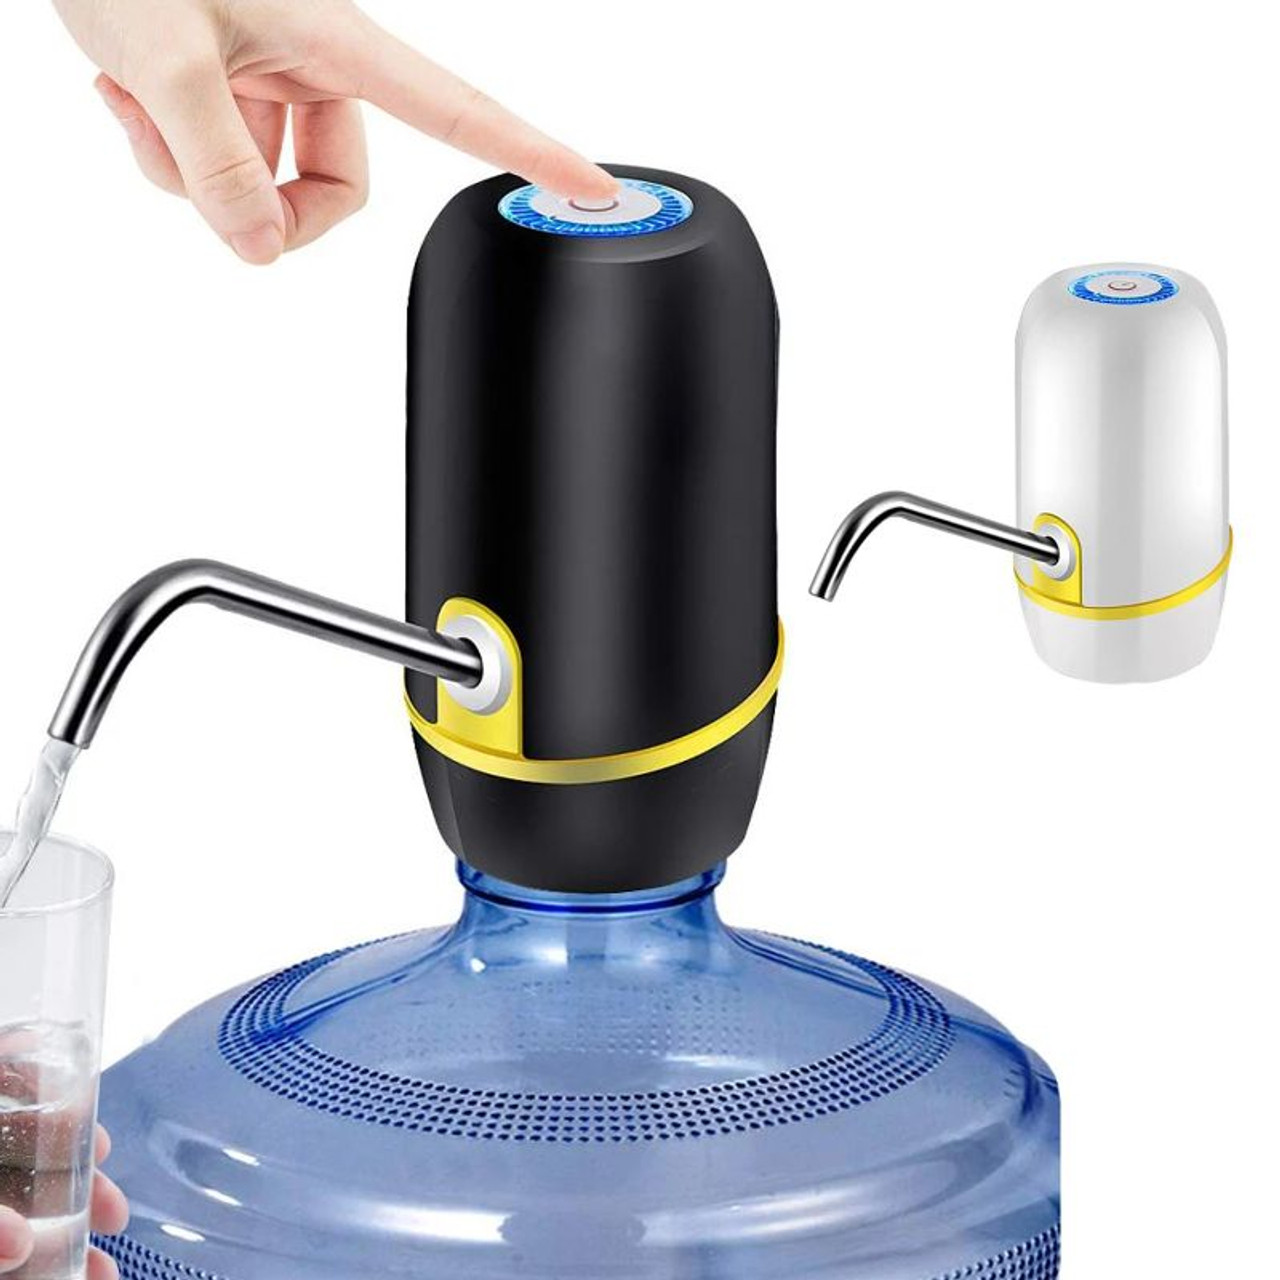 Portable Electric Rechargeable Automatic Water Bottle Pump and Dispenser